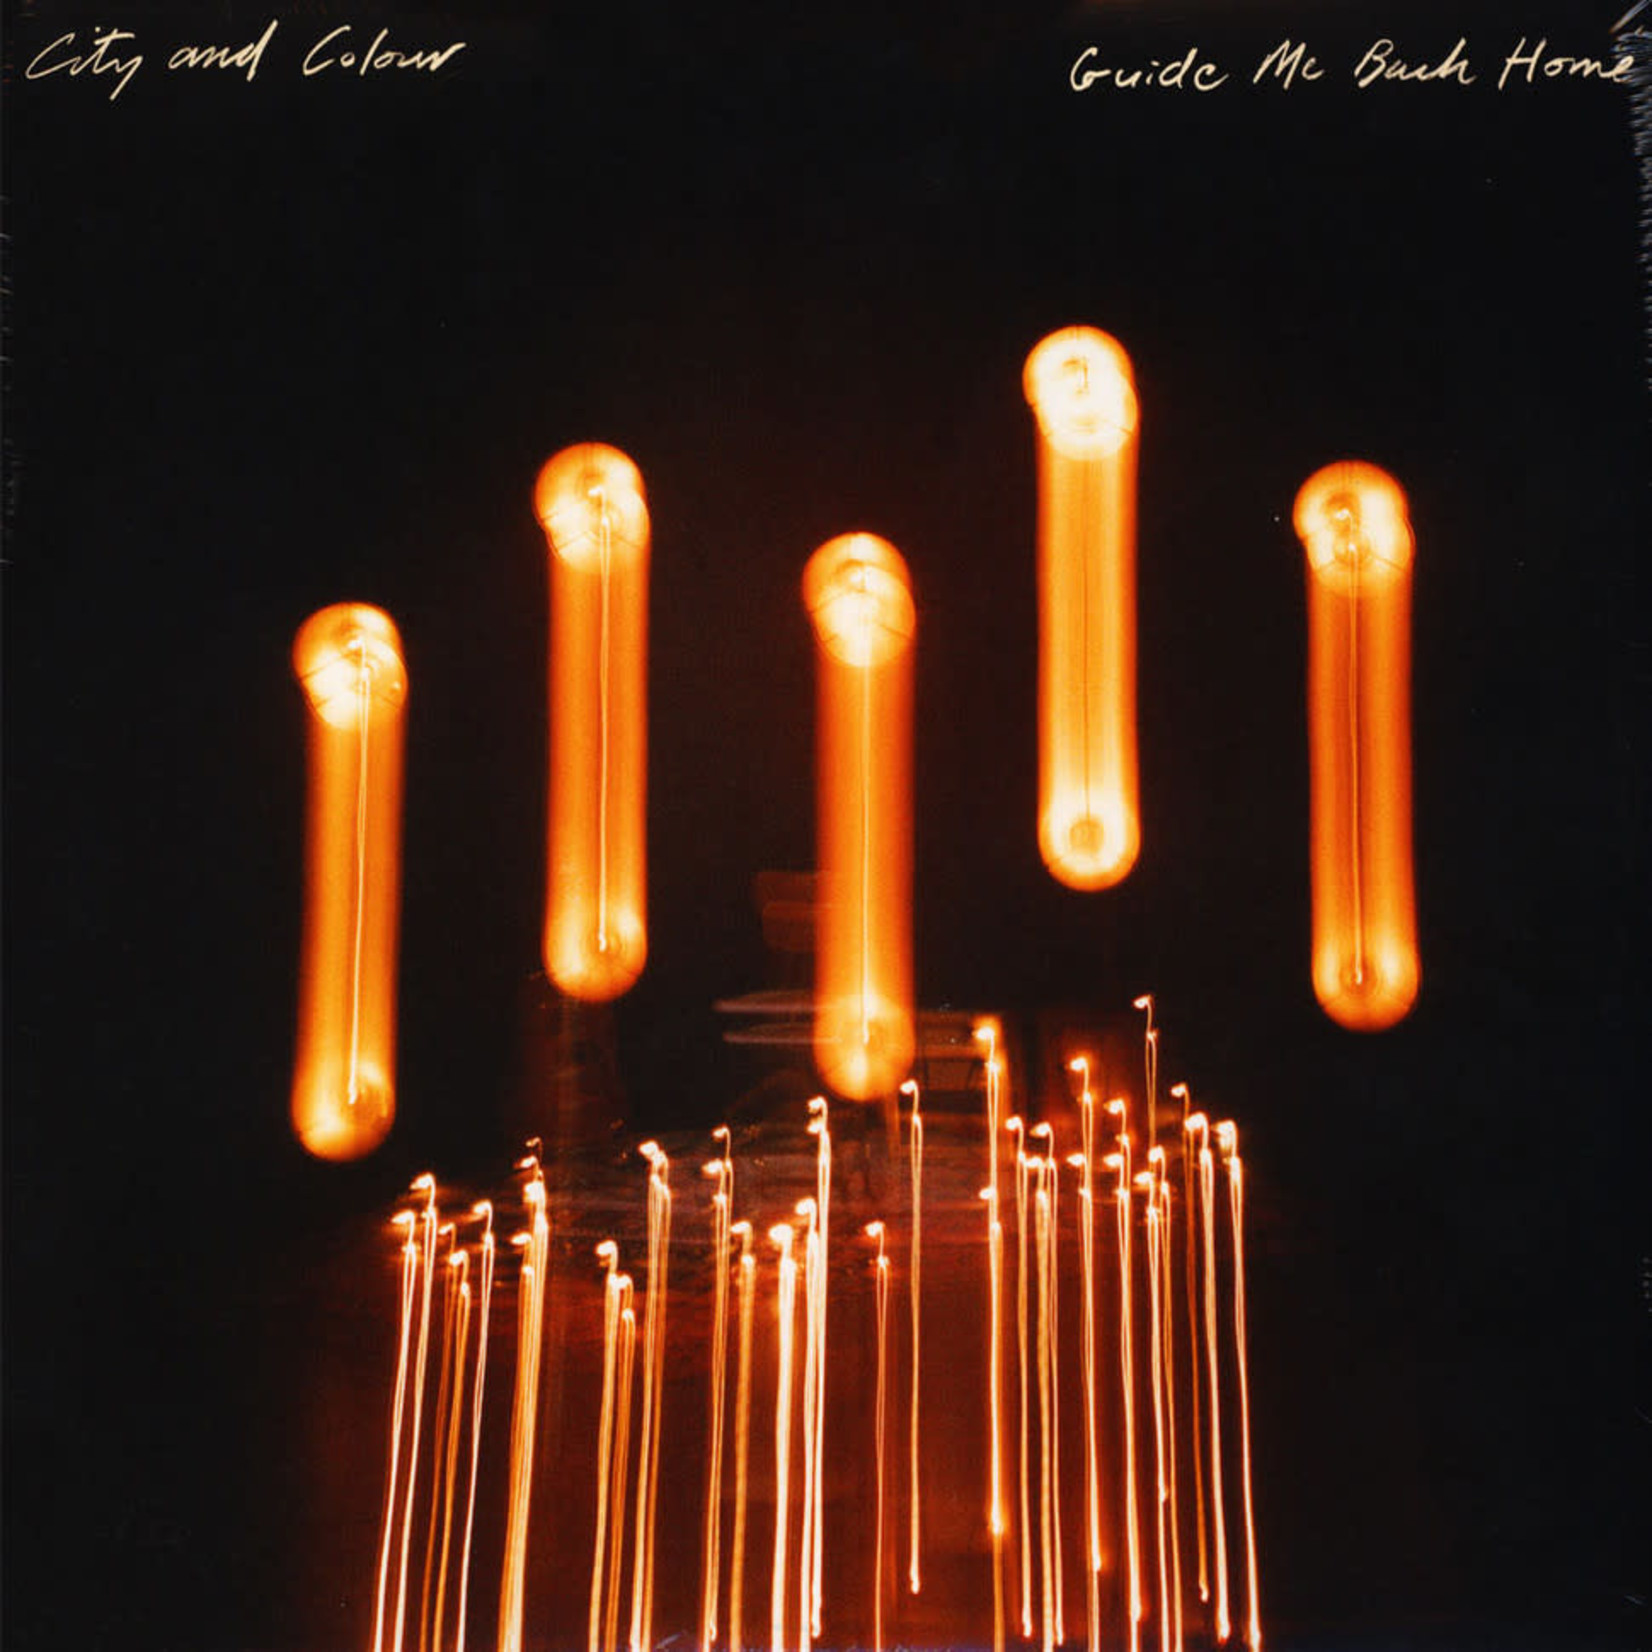 [New] City And Colour: Guide Me Back Home (3LP)